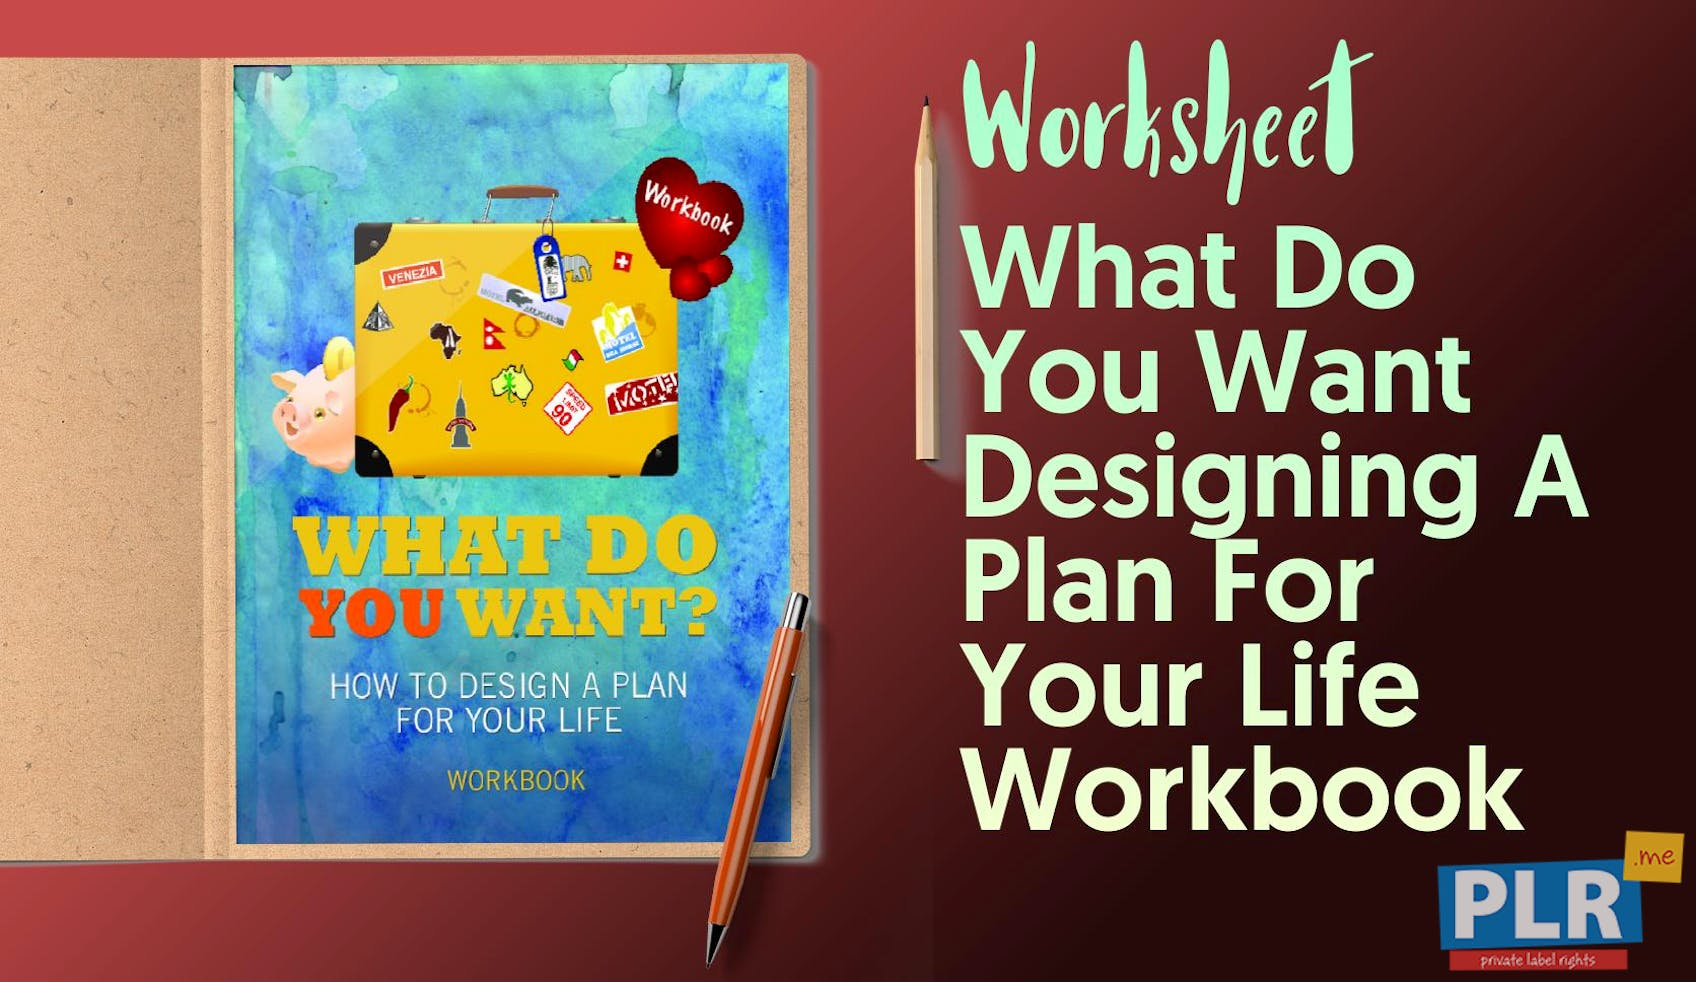 Plr Worksheets What Do You Want Designing A Plan For Your Life